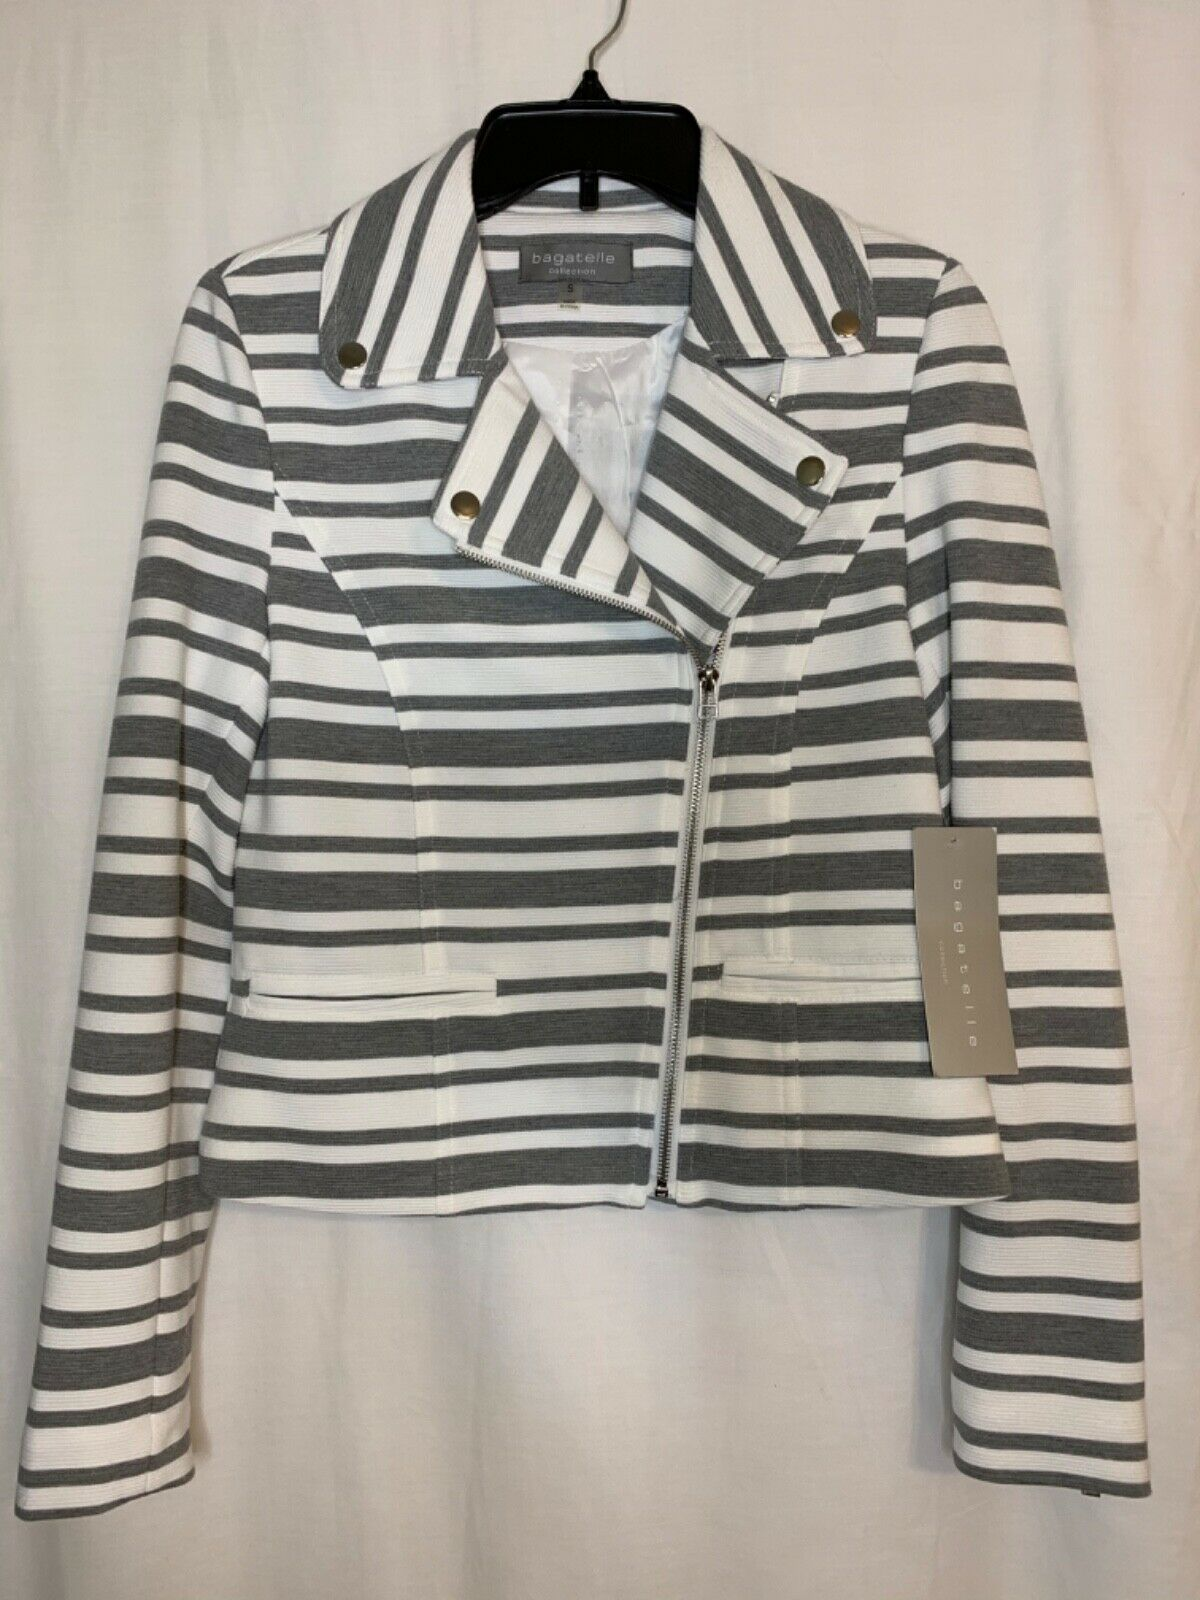 Bagatelle NWT Women's Gray and White Zipper Front Jacket Zipper Sleeves Size Sma